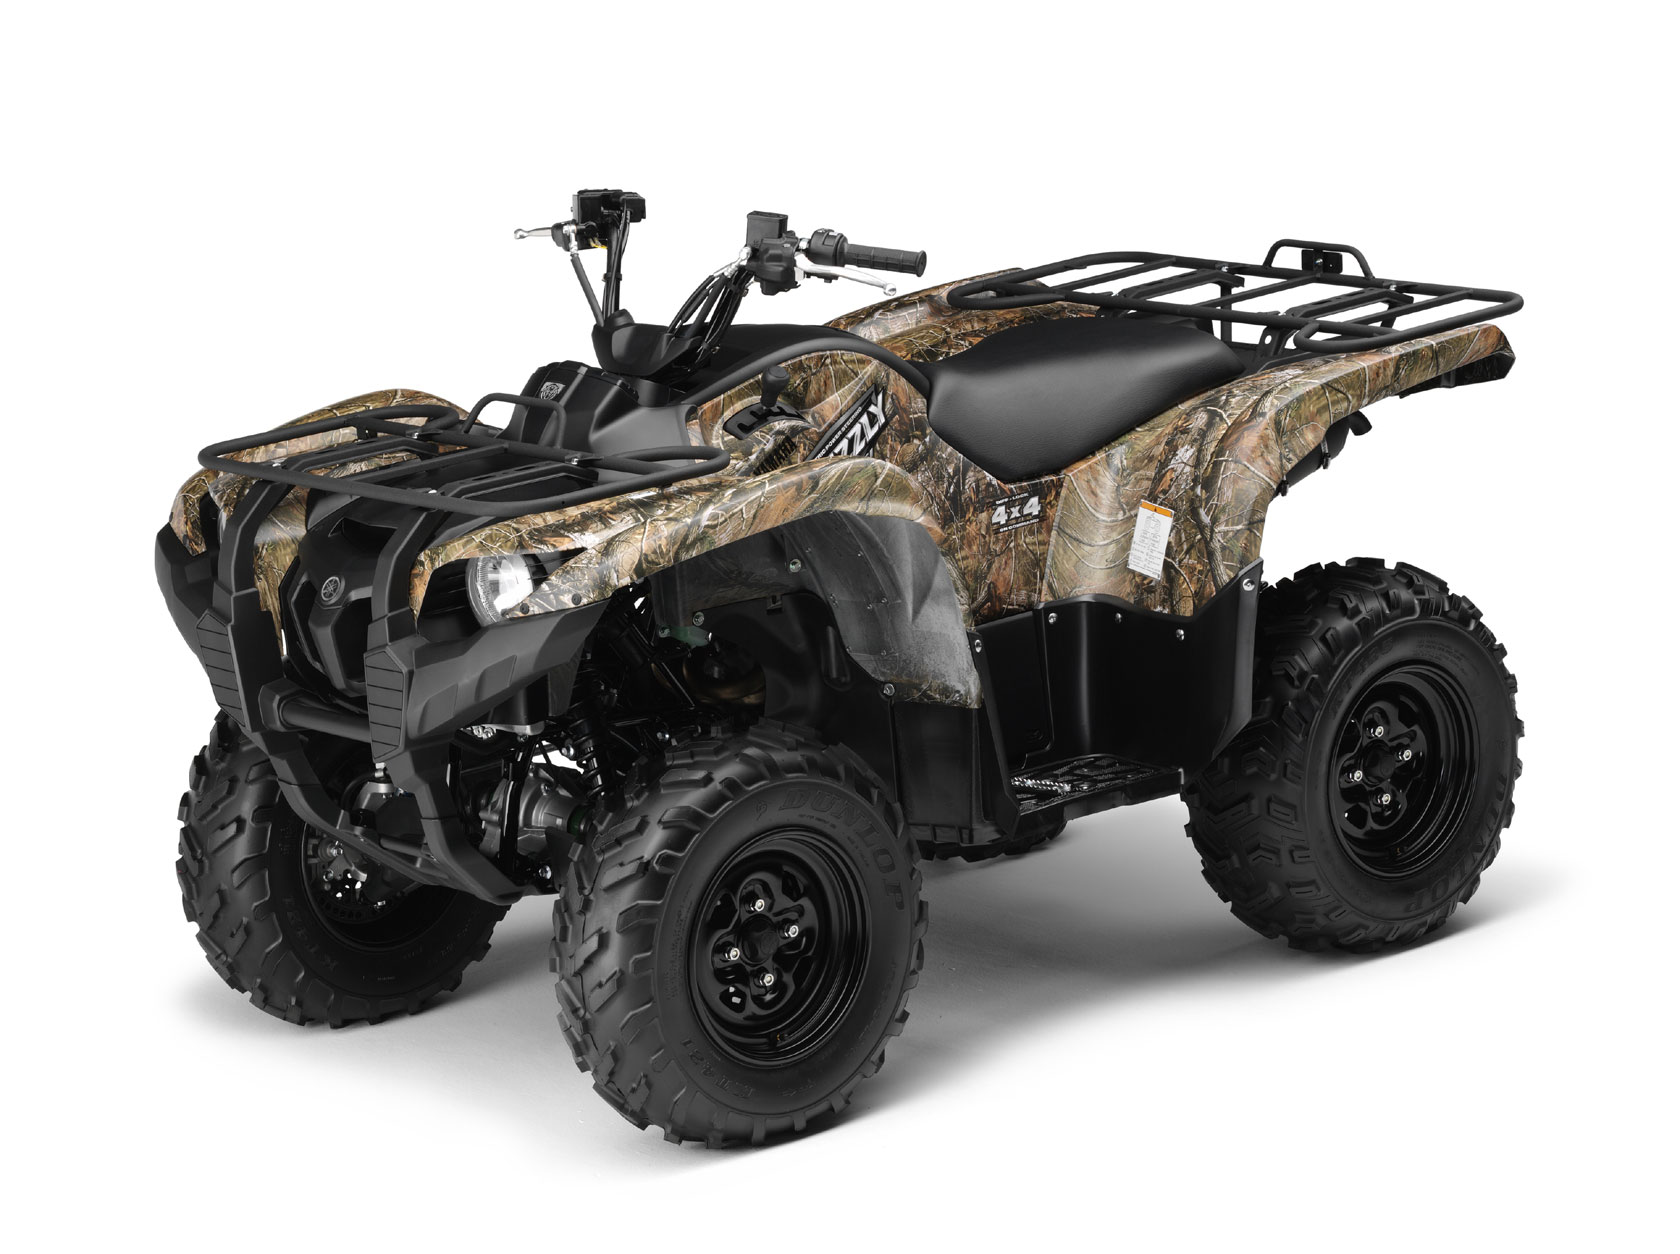 Yamaha grizzly 700 fi specs 2008 2009 autoevolution for Yamaha grizzly 400